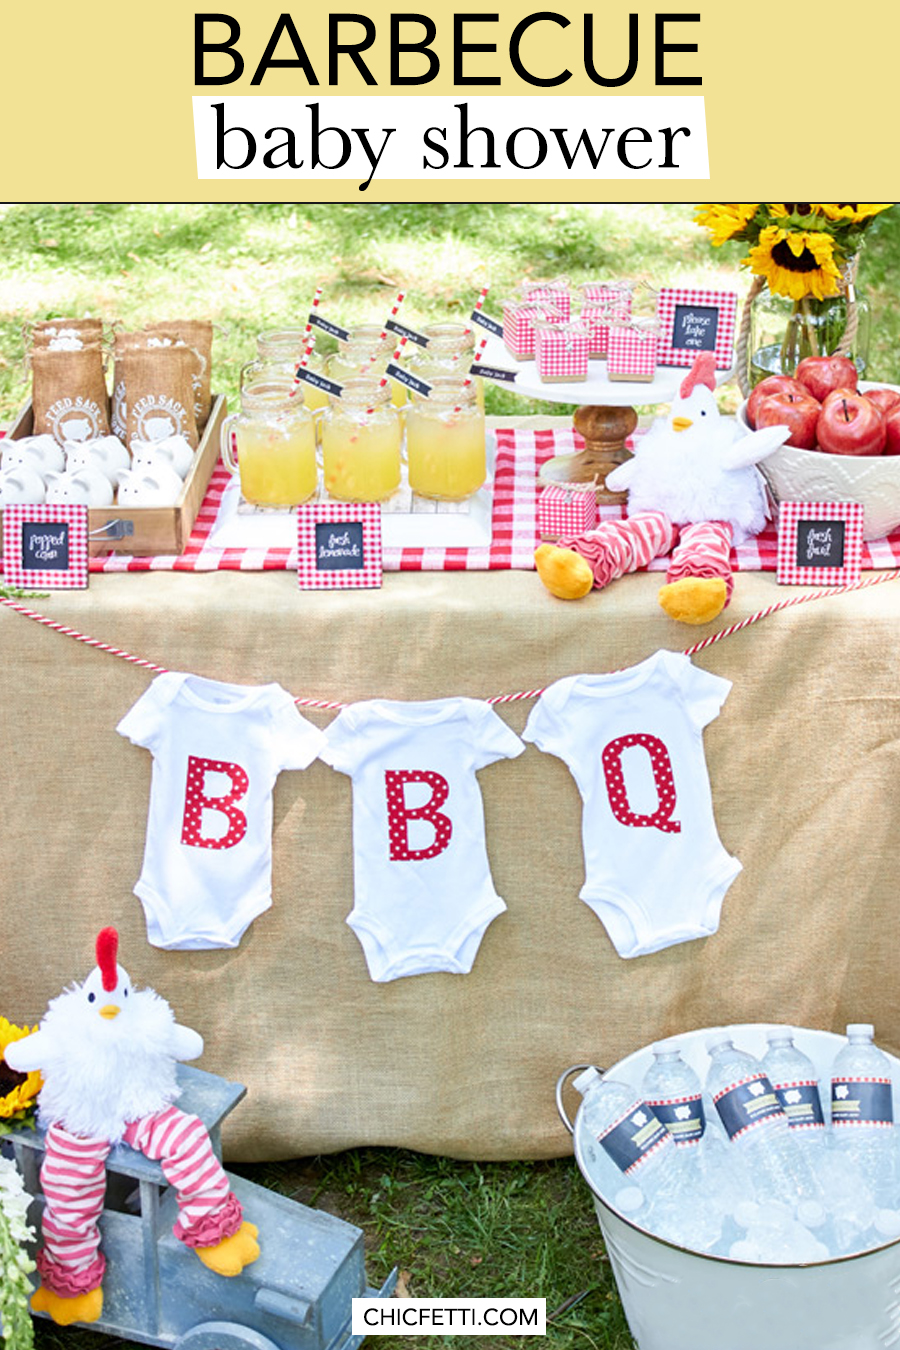 Baby Shower Themes for Girls - Barbecue Baby Shower